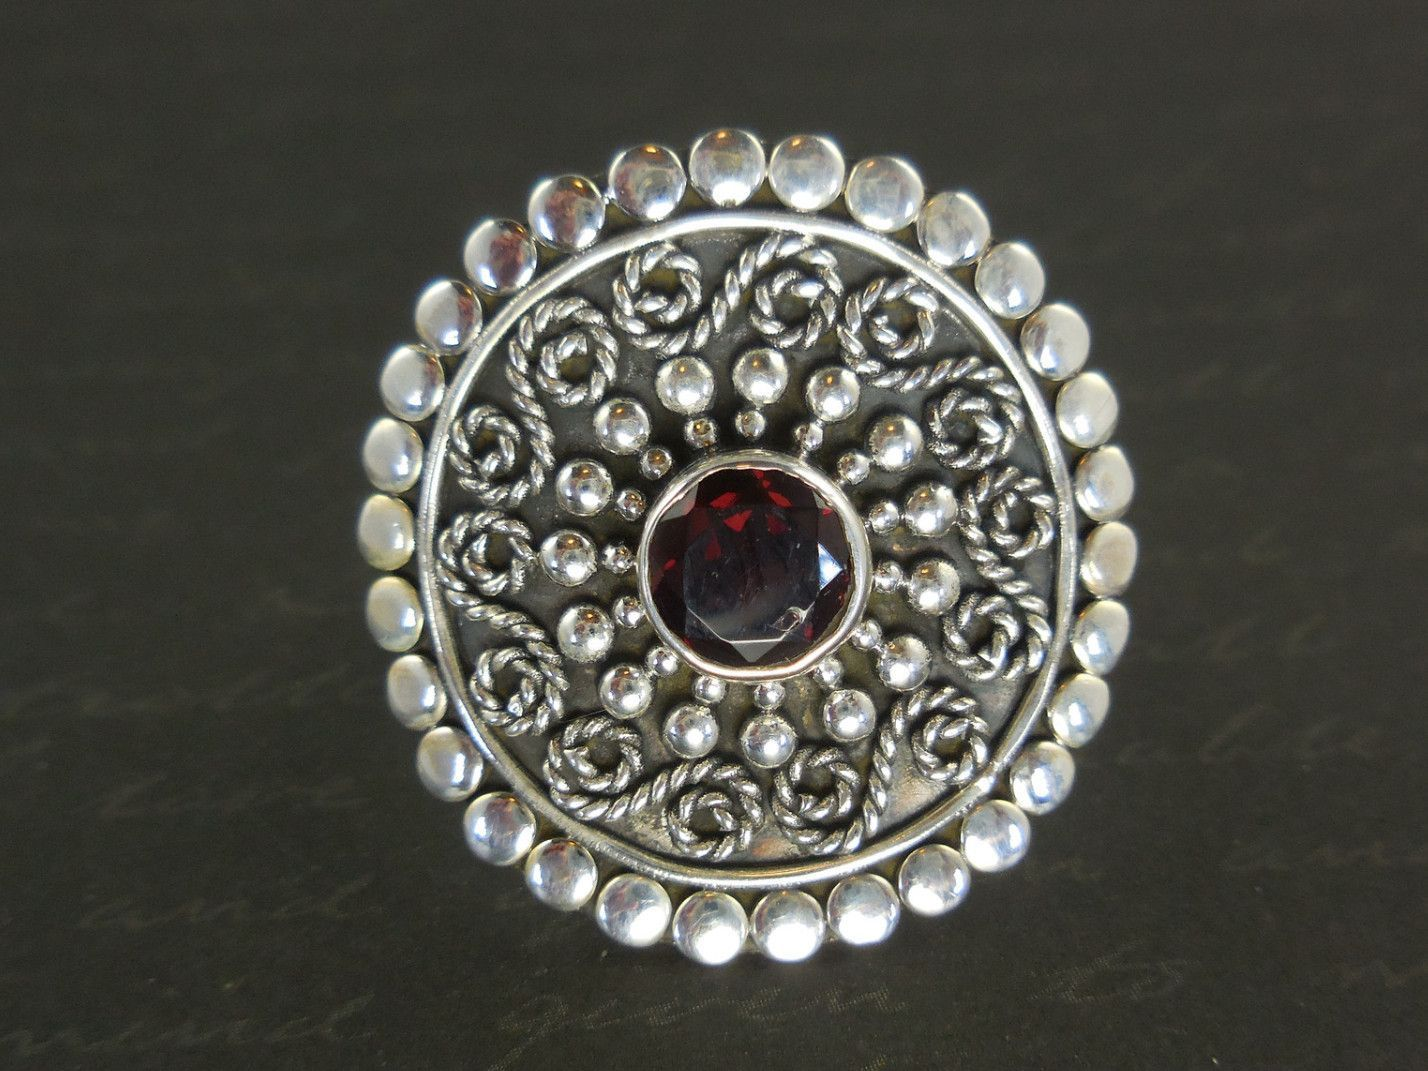 Made with 7mm round faceted garnet gemstone, sterling silver wire and metal. Size 7.0